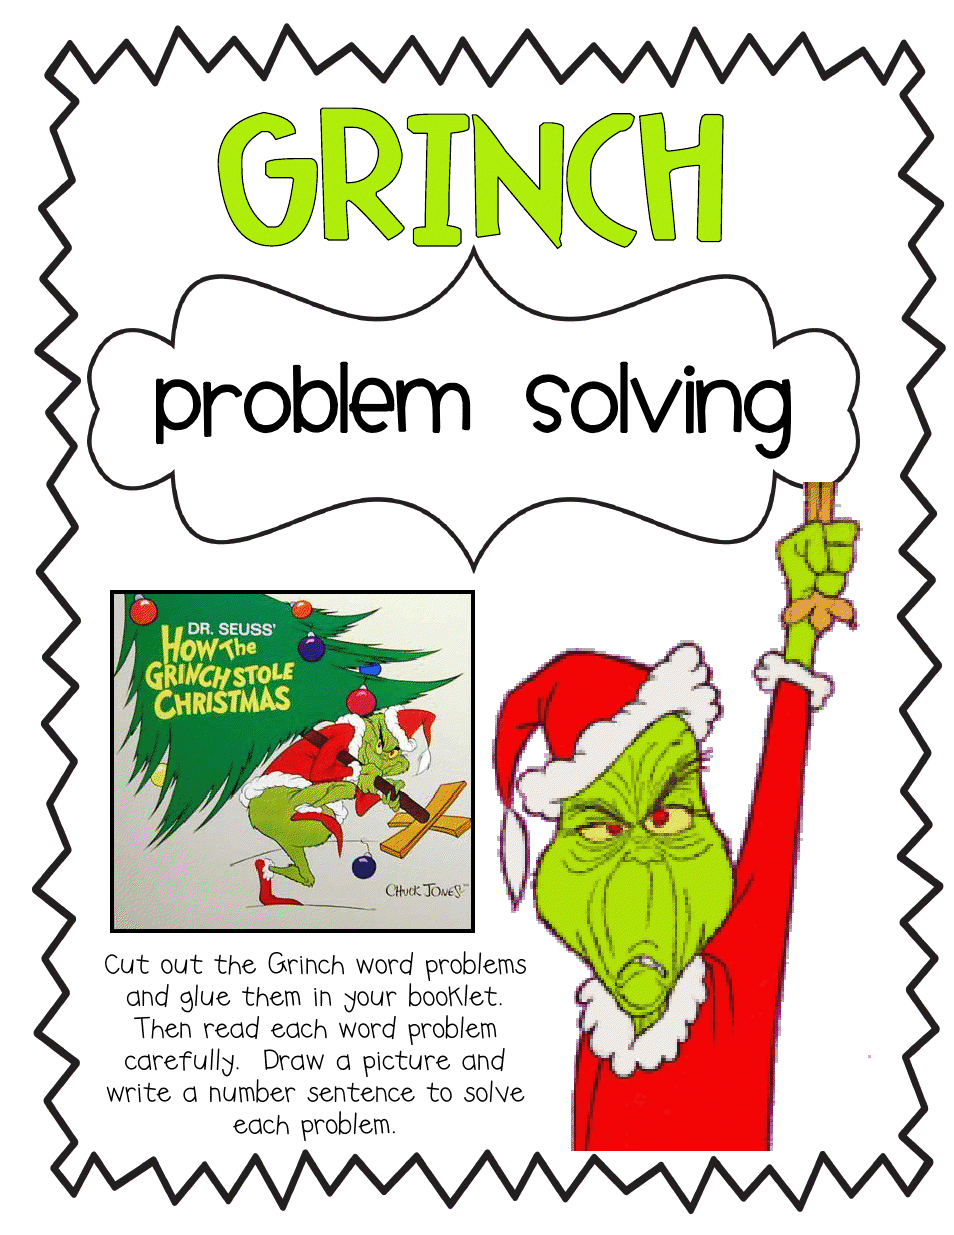 Grinch Proble Solving Activity Pdf Christmas Classroom Holiday Lessons Christmas Lesson